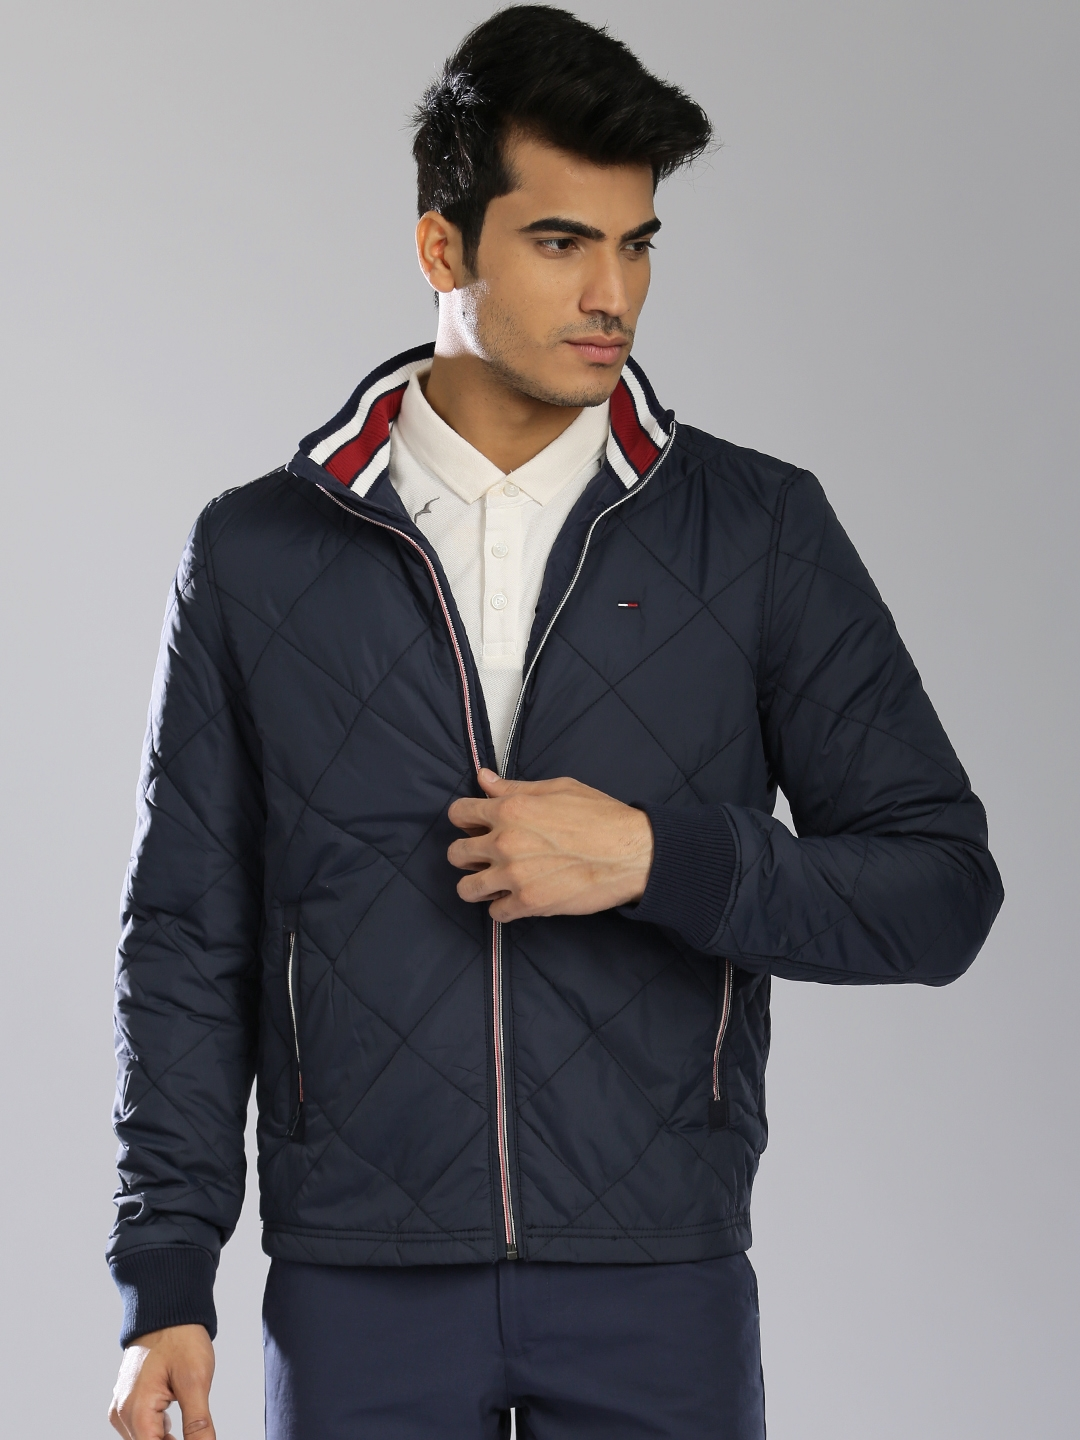 94a966d5b2e0b ... Tommy Hilfiger Navy Quilted Jacket Jackets For Men 1519063 cozy fresh  f93a4 90162  Ted Baker DALWAY Geo ...